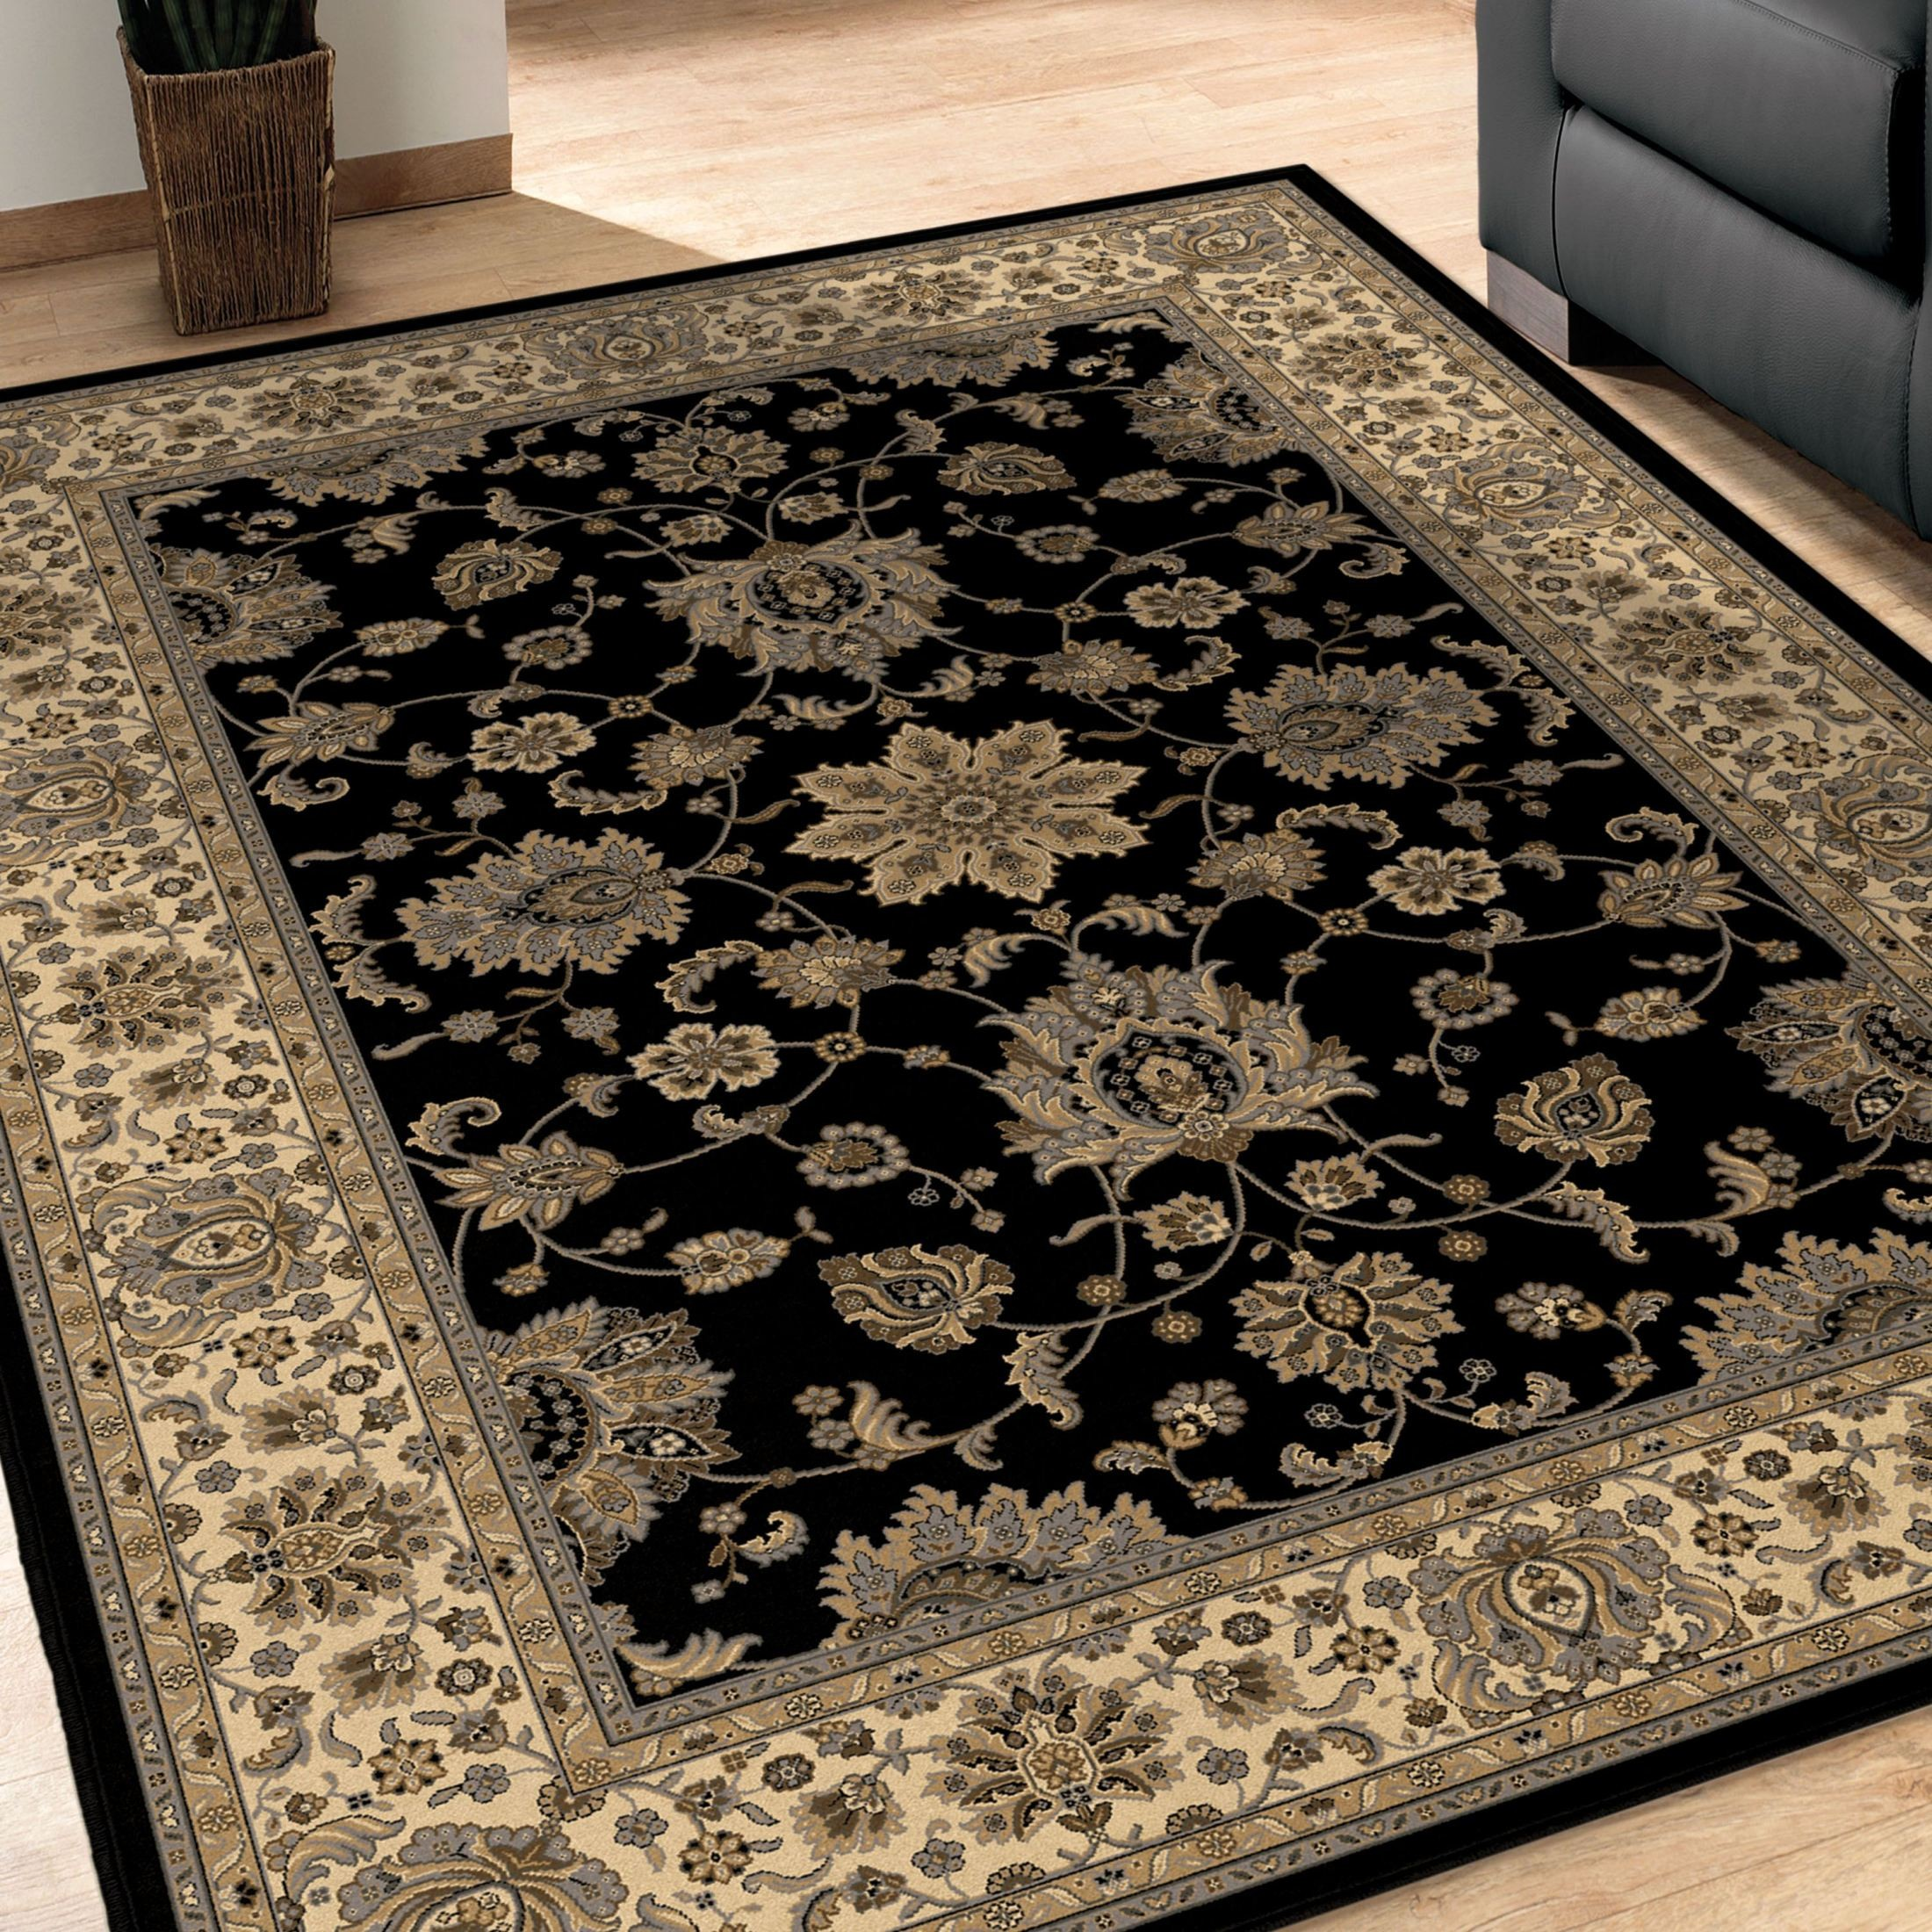 Black And White Extra Large Rug: Orian Rugs Detailed Design Traditional Borokan Black Area